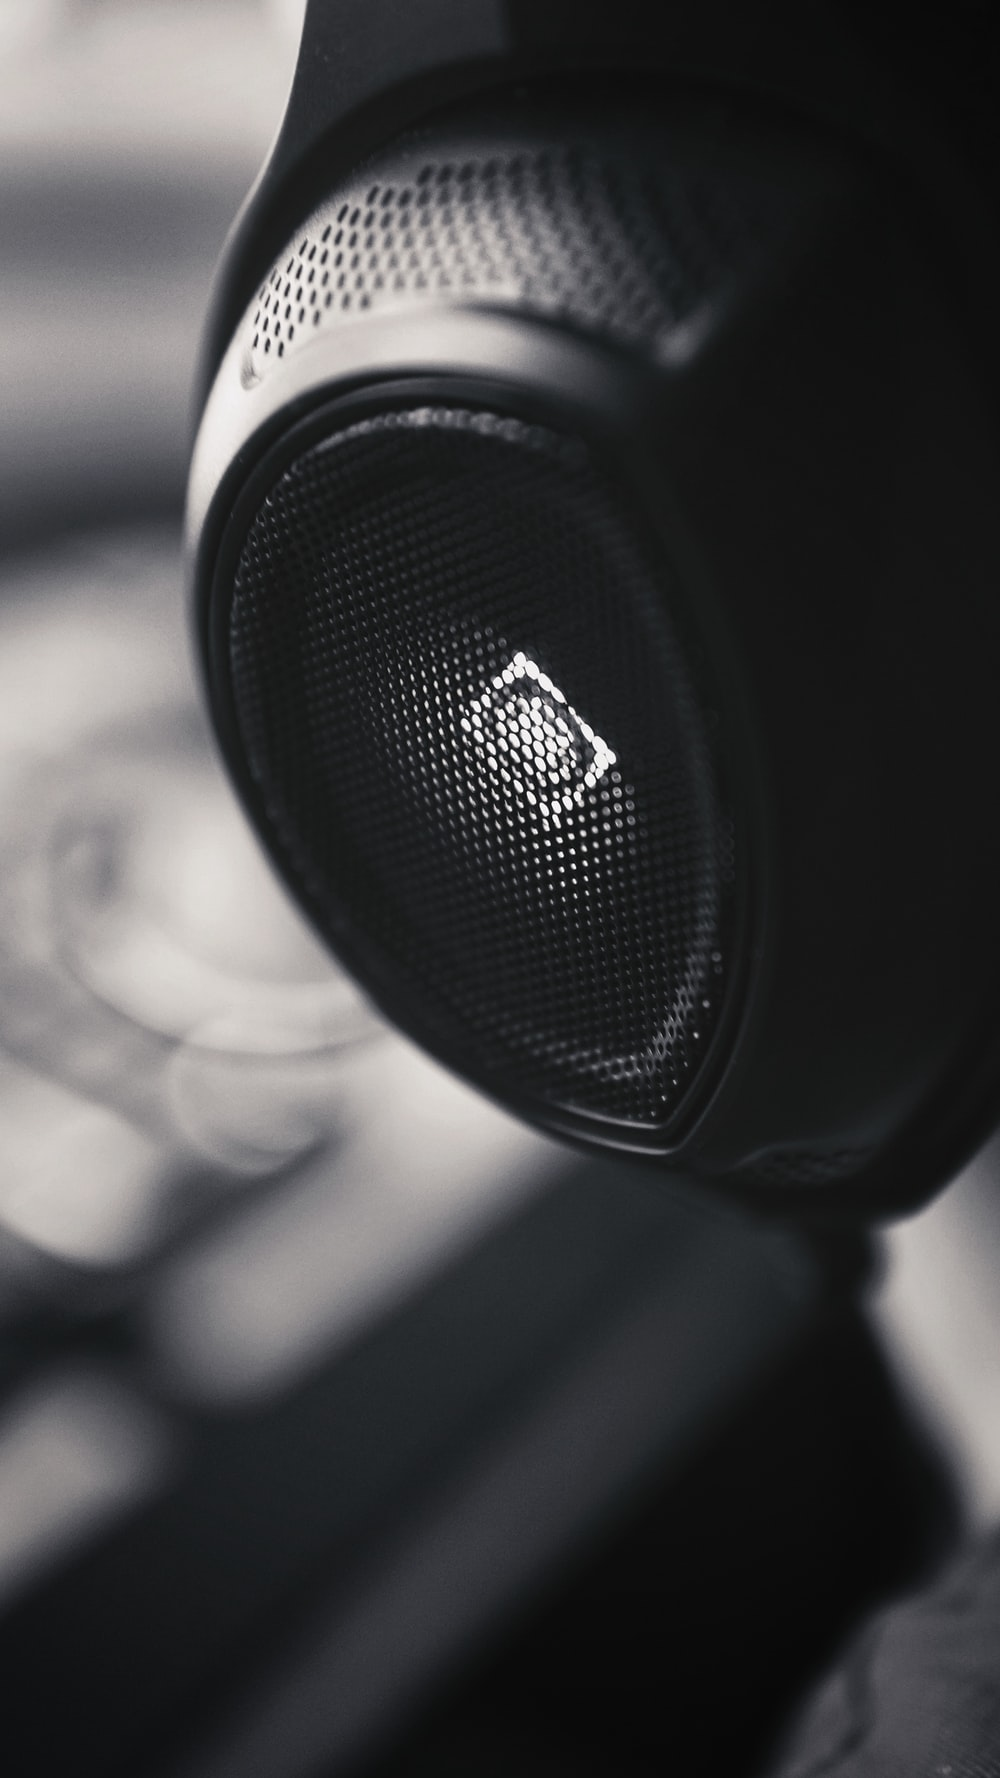 black and silver speaker in grayscale photography